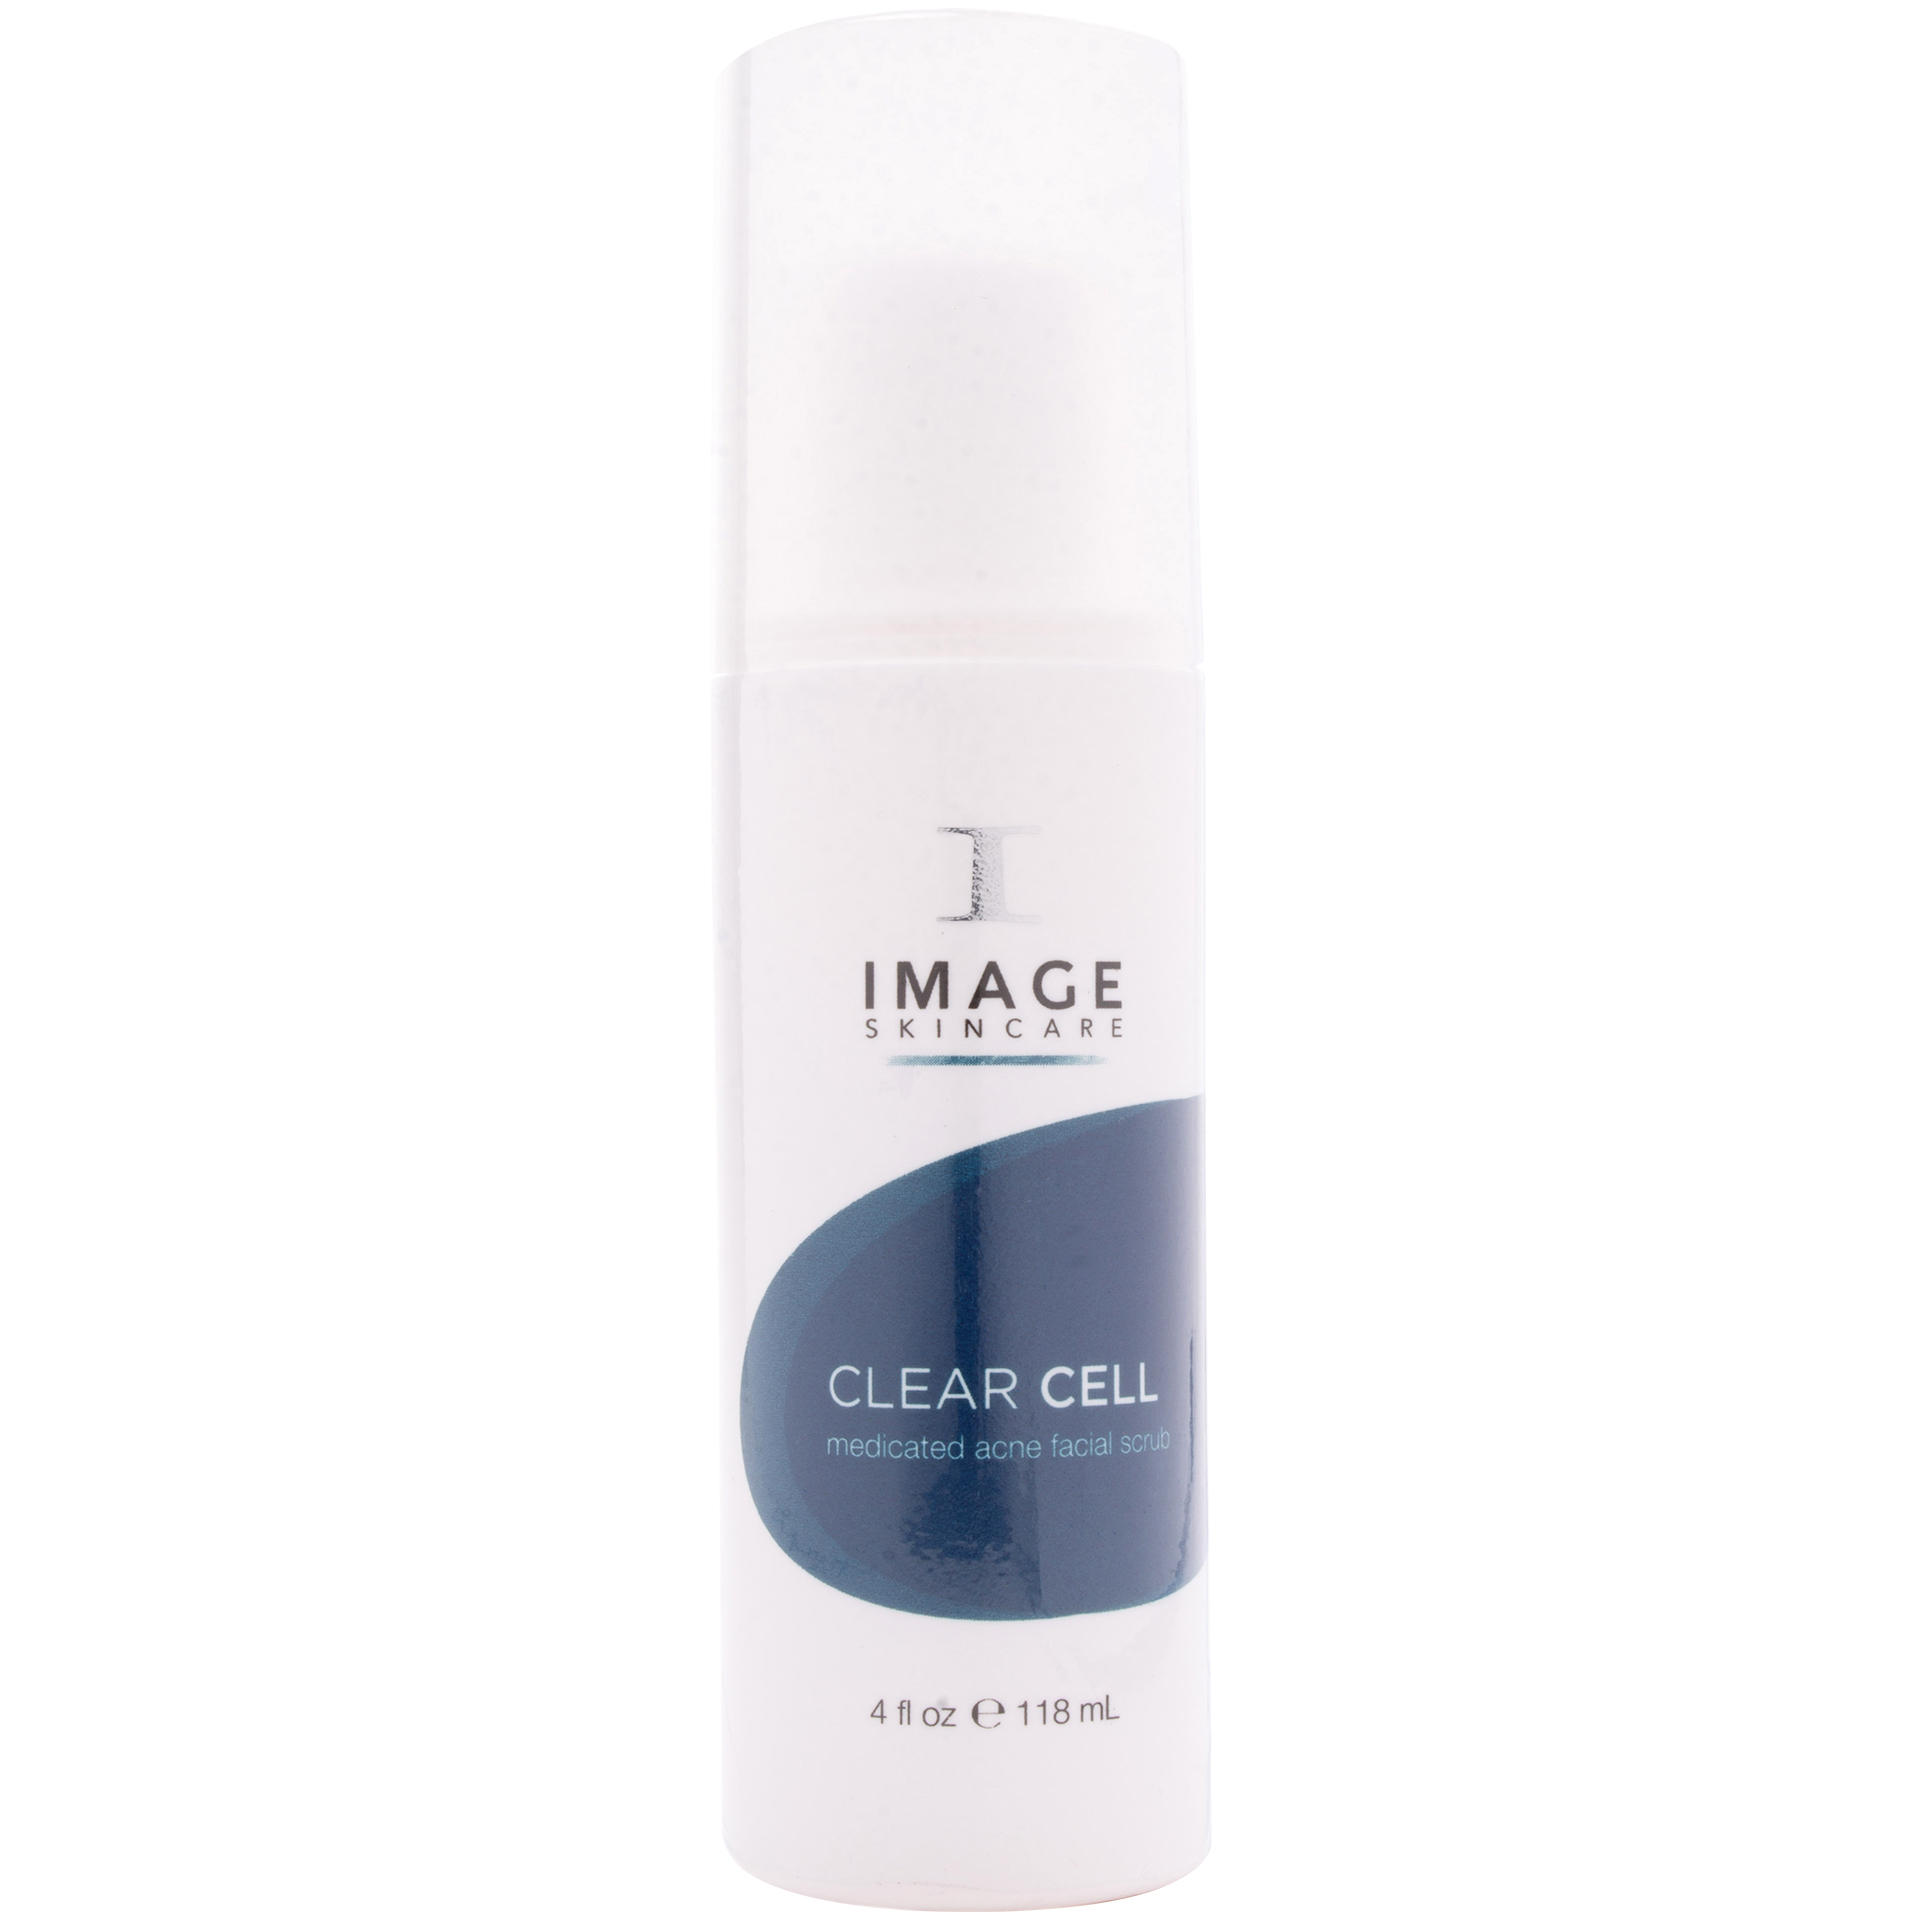 Image Skin Care Image Skincare Clear Cell Medicated Acne Facial